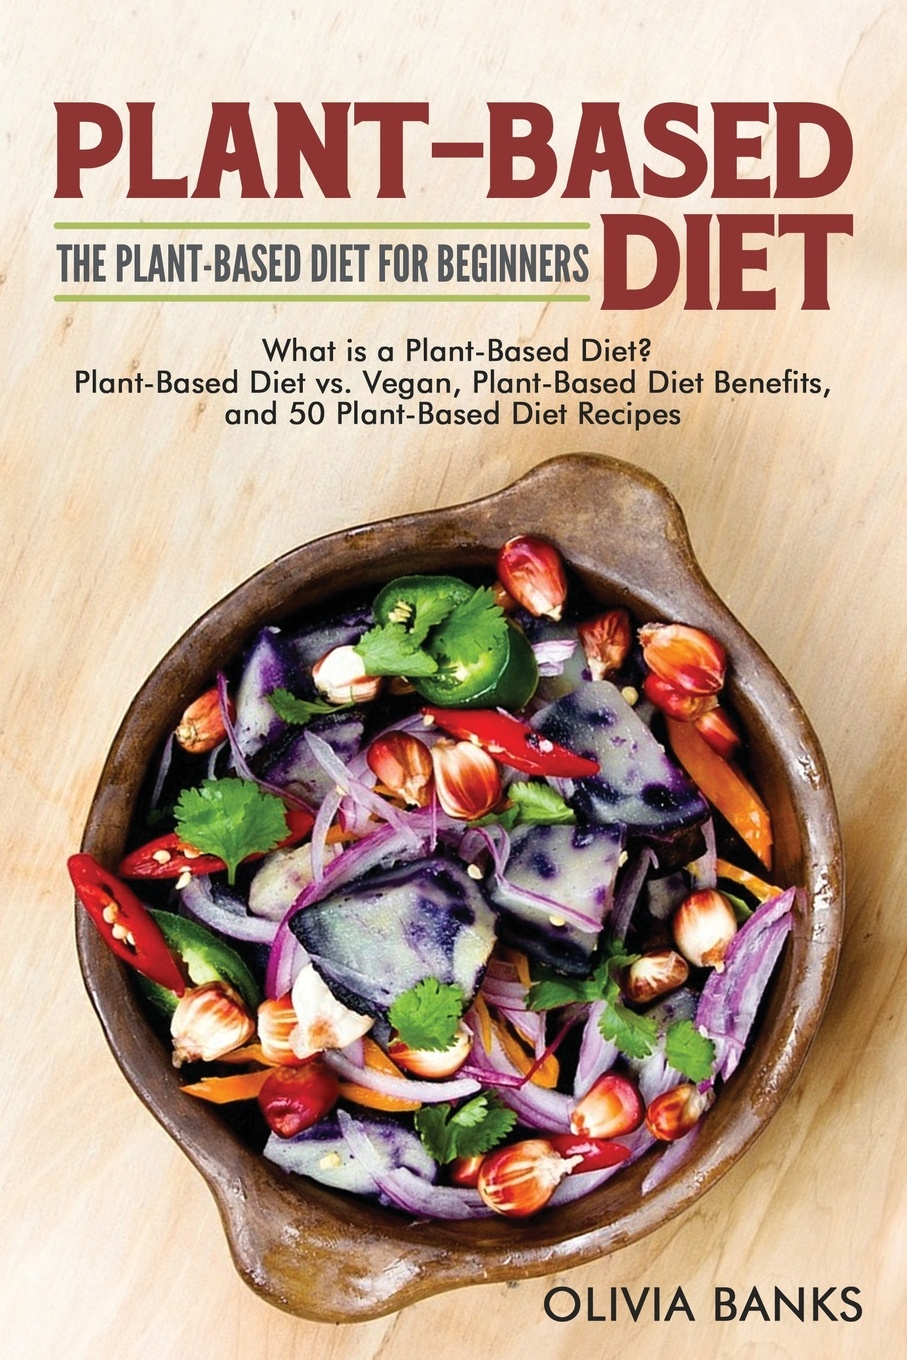 Фото - Olivia Banks Plant-Based Diet. The Plant-Based Diet for Beginners: What is a Plant-Based Diet? Plant-Based Diet vs. Vegan, Plant-Based Diet Benefits, and 50 Plant-Based Diet Recipes trisha greenhalgh how to read a paper the basics of evidence based medicine